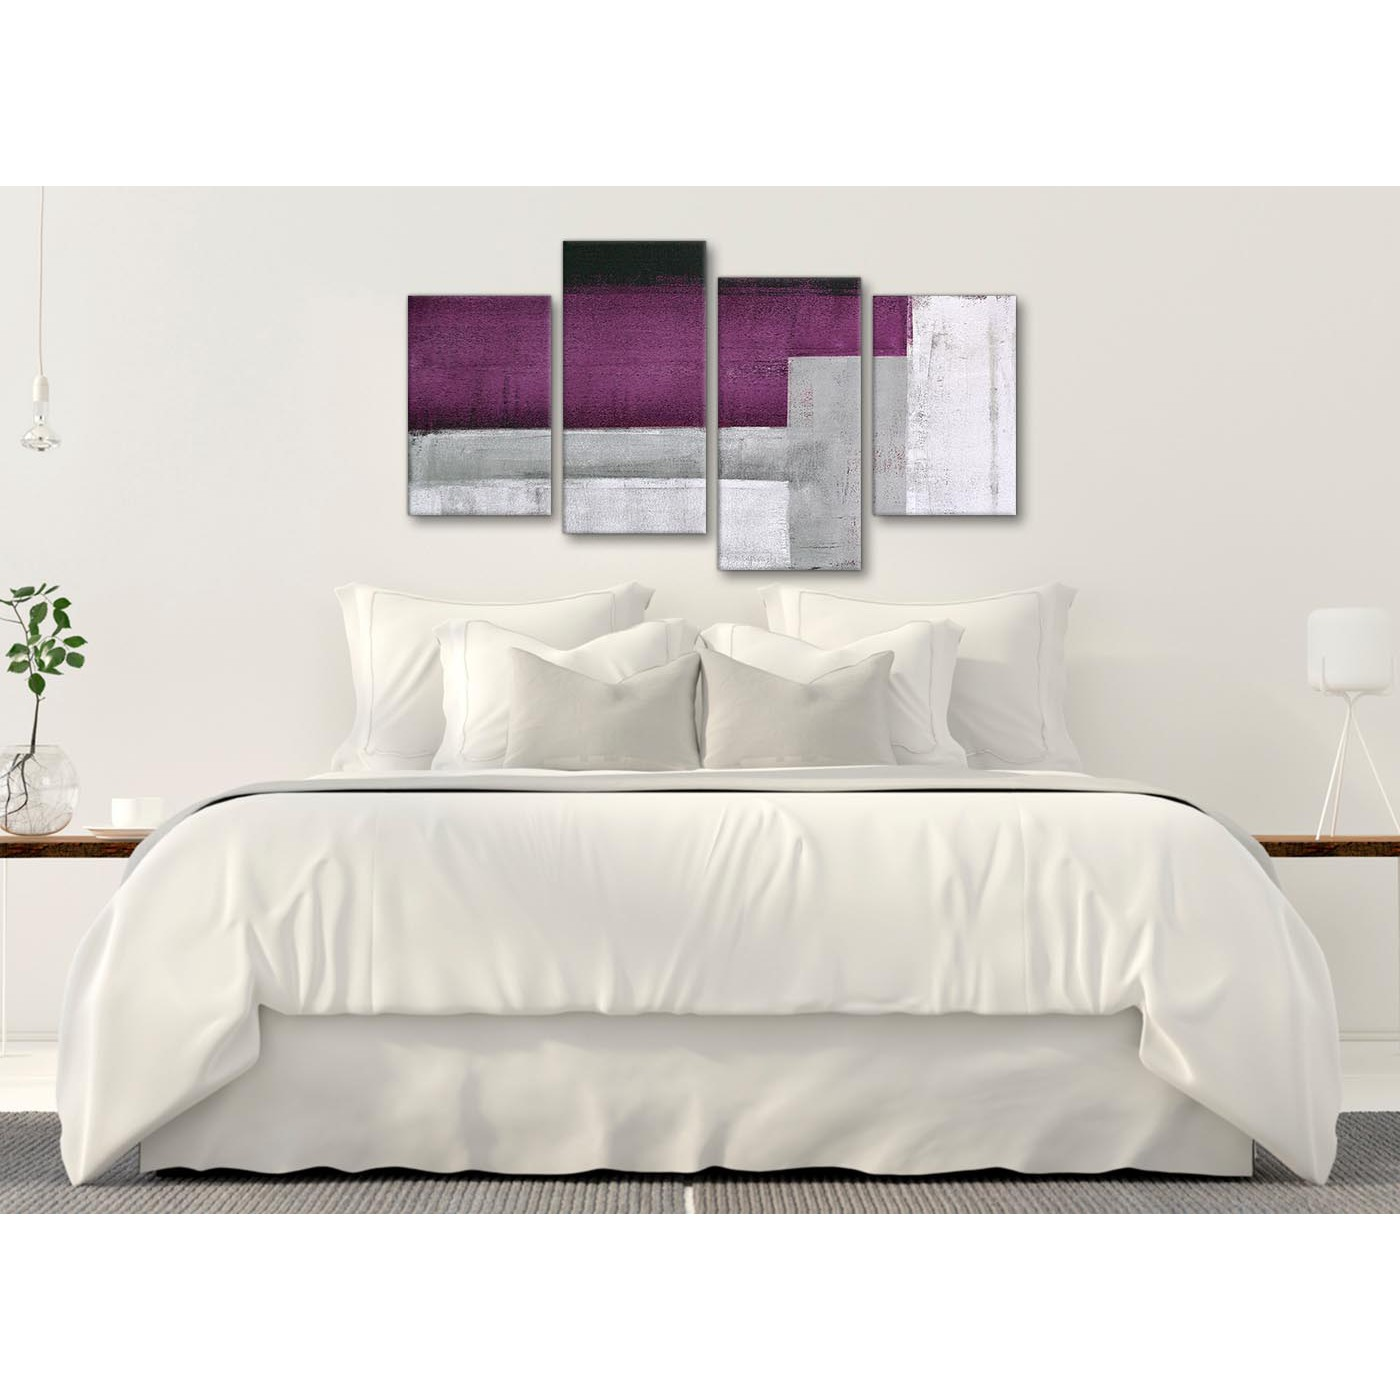 Large purple grey painting abstract bedroom canvas - Purple and grey living room accessories ...